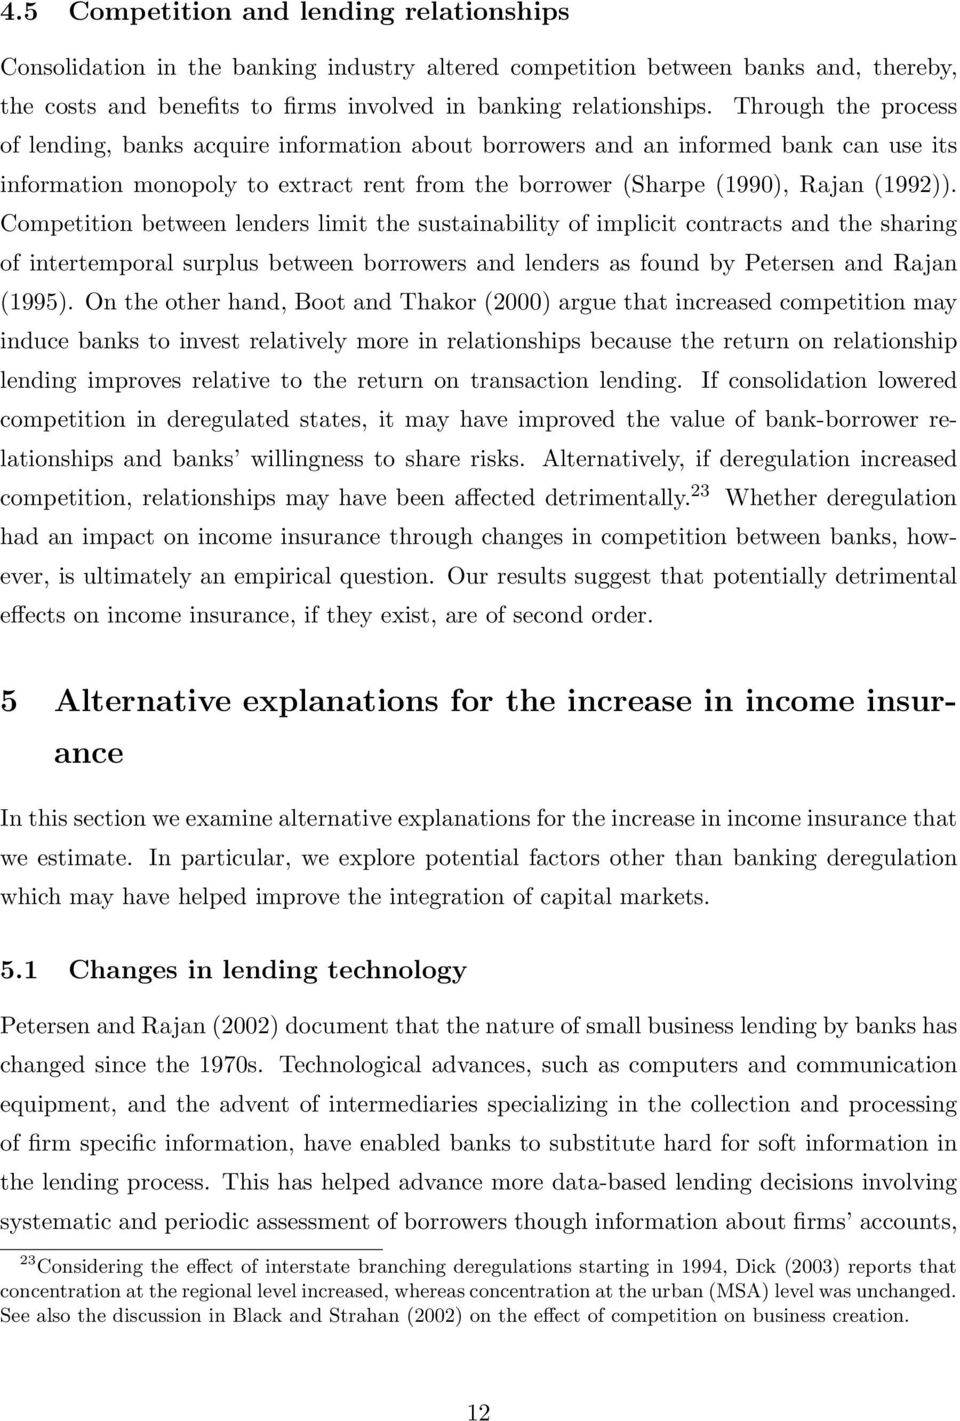 Competition between lenders limit the sustainability of implicit contracts and the sharing of intertemporal surplus between borrowers and lenders as found by Petersen and Rajan (1995).